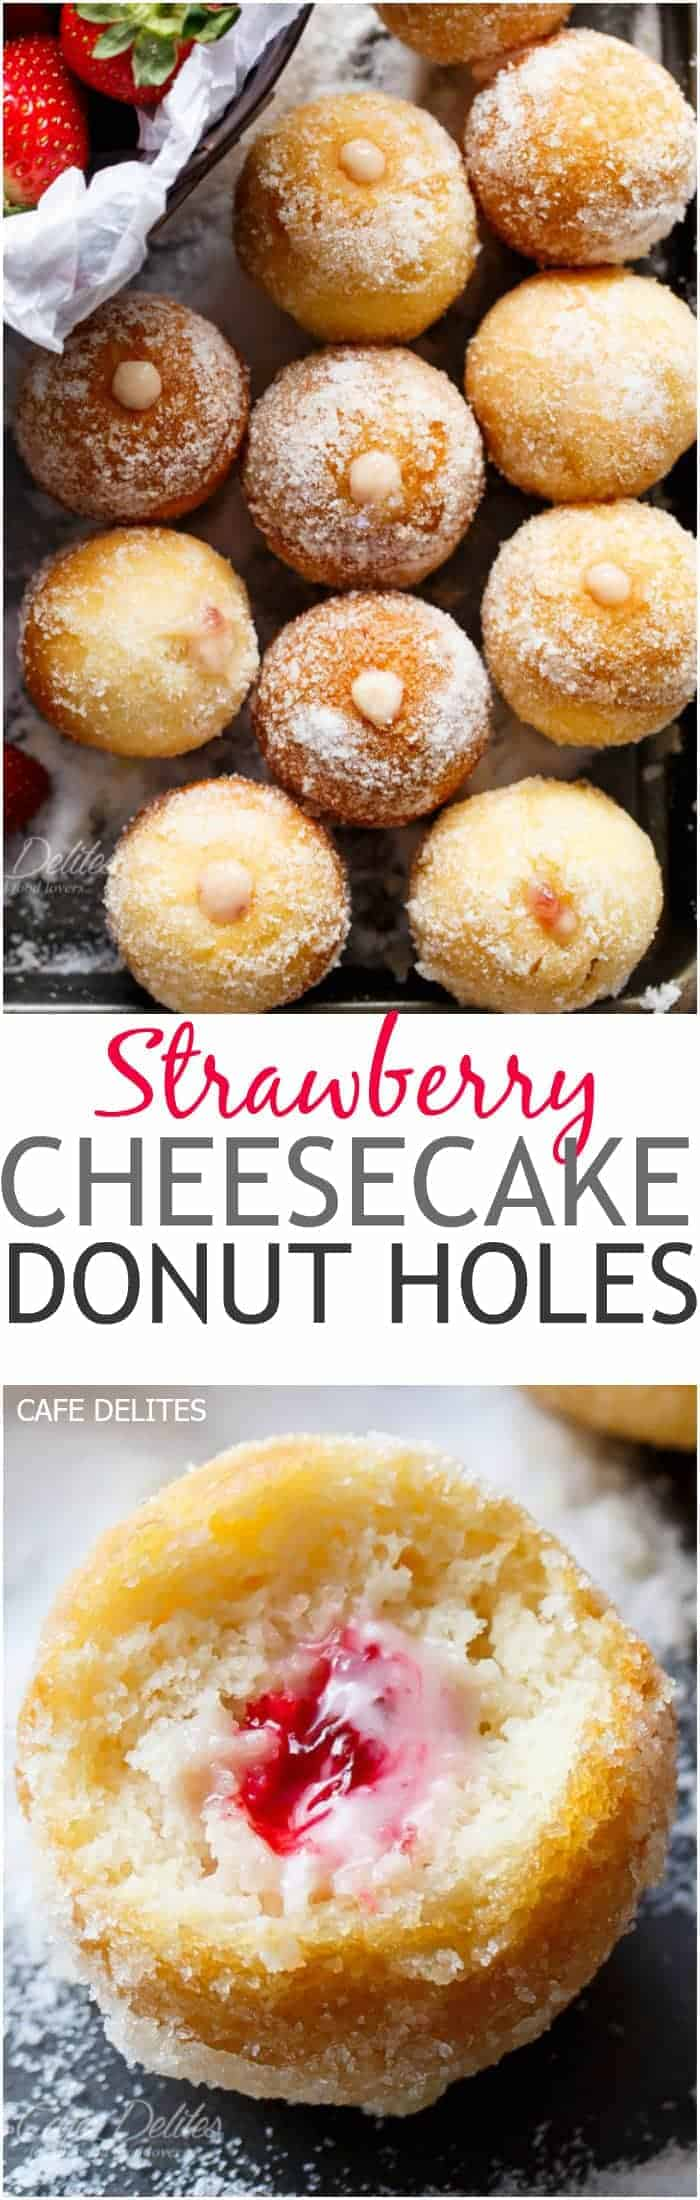 Lightened up soft and fluffy Strawberry Cheesecake Donut Holes, filled with sweet strawberry and creamy cheesecake filling! Enjoy with no guilt! | https://cafedelites.com